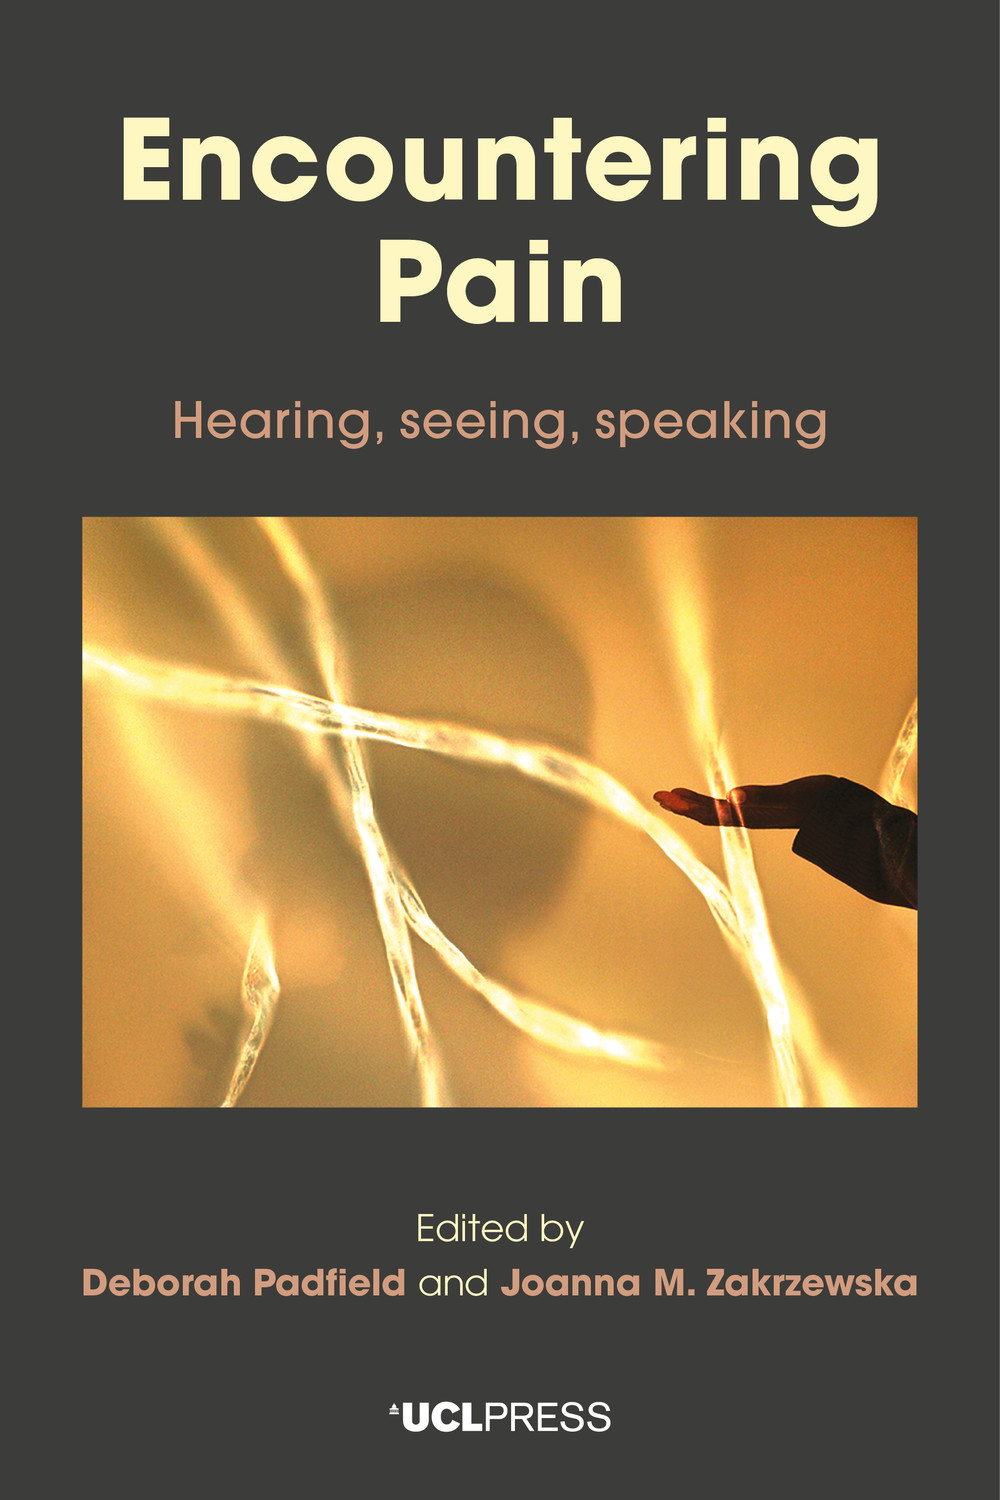 Virtual IAS Book Launch - Encountering Pain: Hearing, Seeing, Speaking